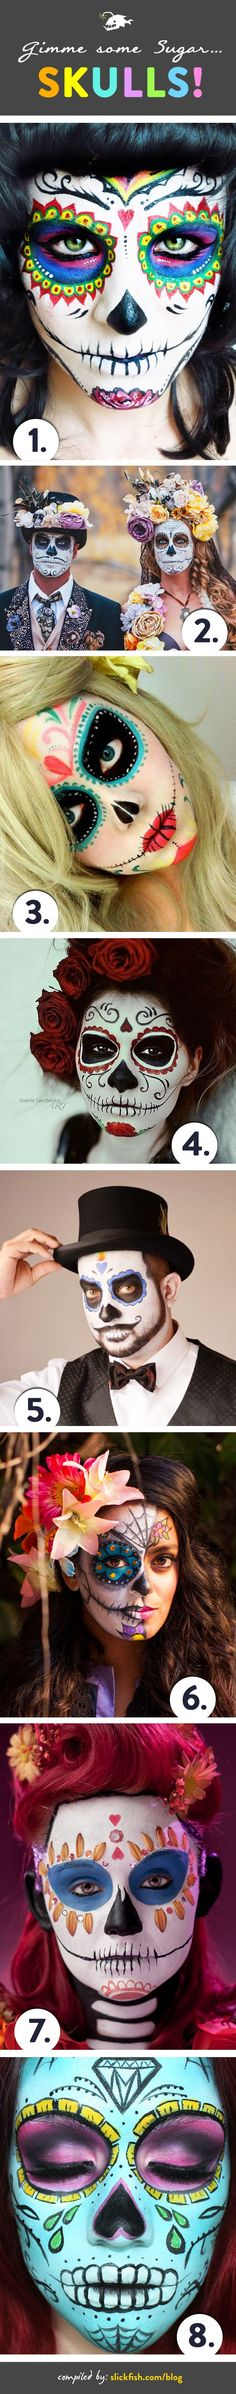 Sugar skulldesignsare a popular choice for adult face paint this Halloween. We love the look, so wegathered some of our favorites for your inspiration.   by slickfish.com